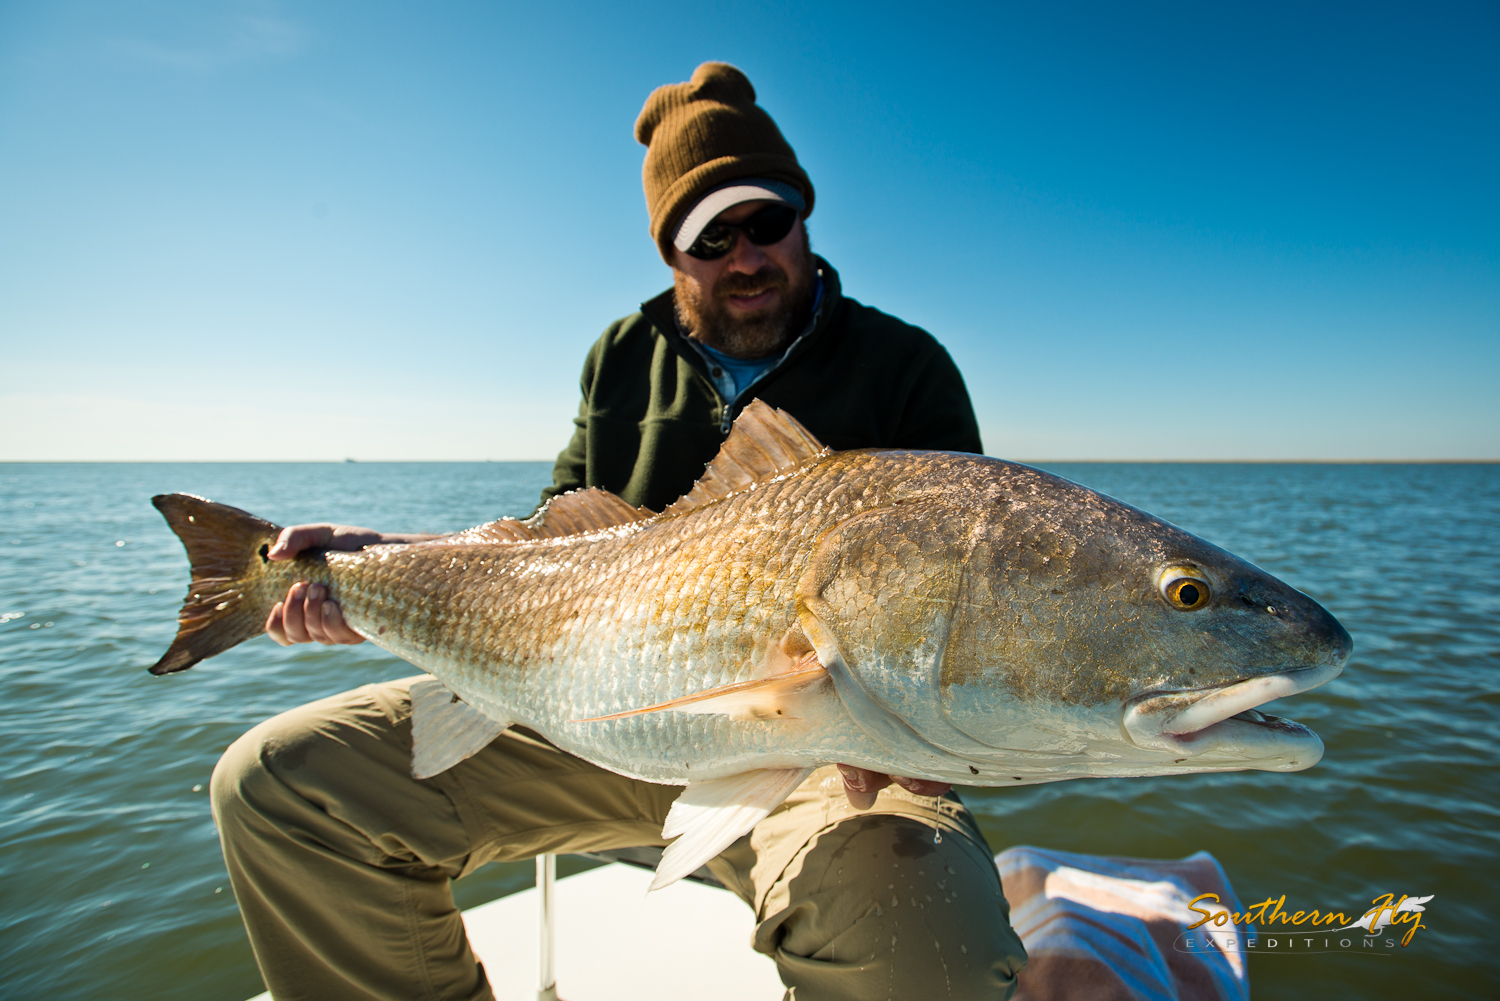 fly fishing new orleans louisiana Southern Fly Expeditions